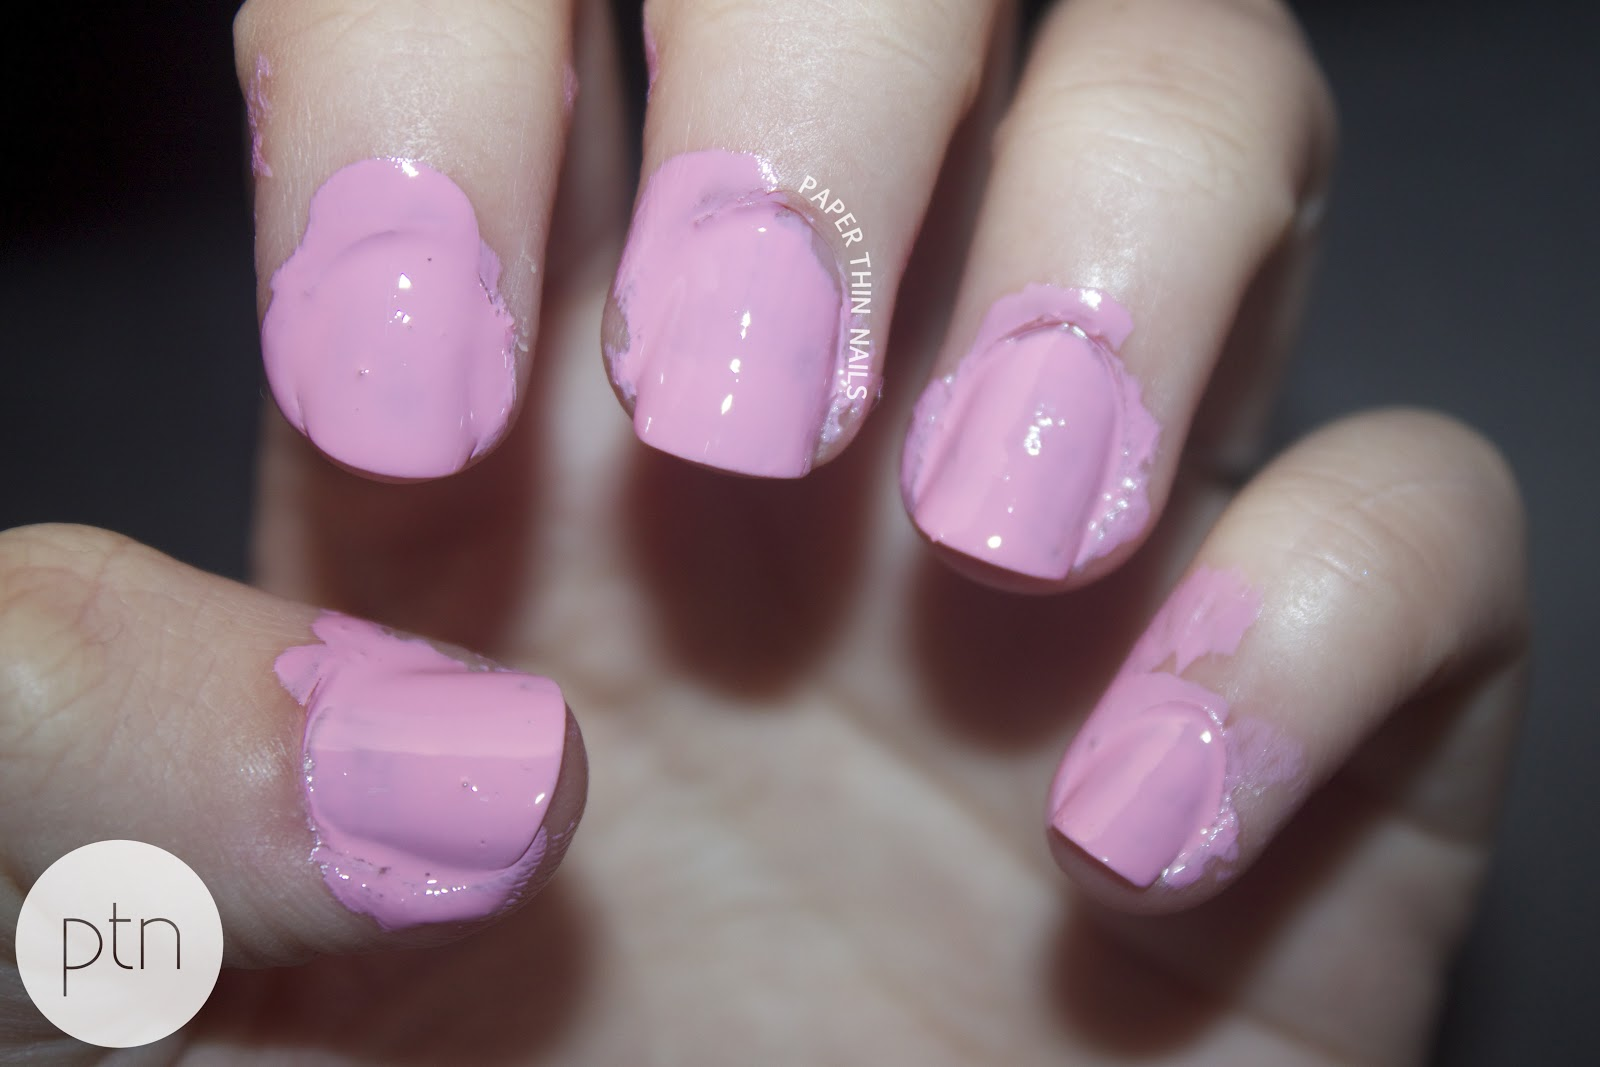 warpedrationails: Painting nails...in the dark!